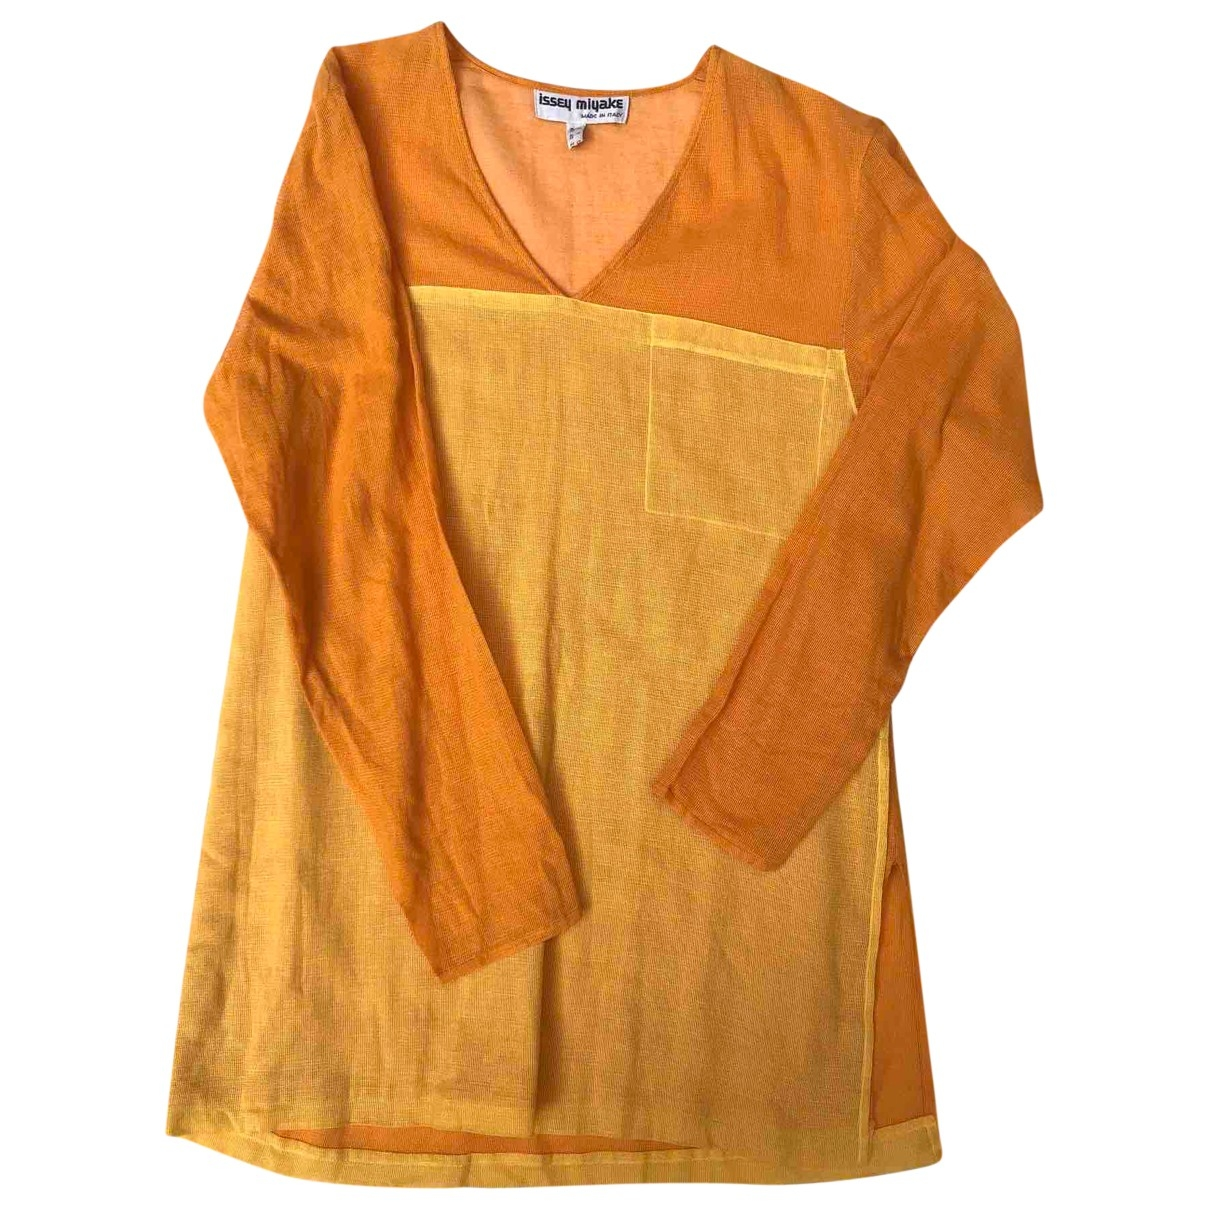 Issey Miyake \N Orange Cotton dress for Women 42 IT